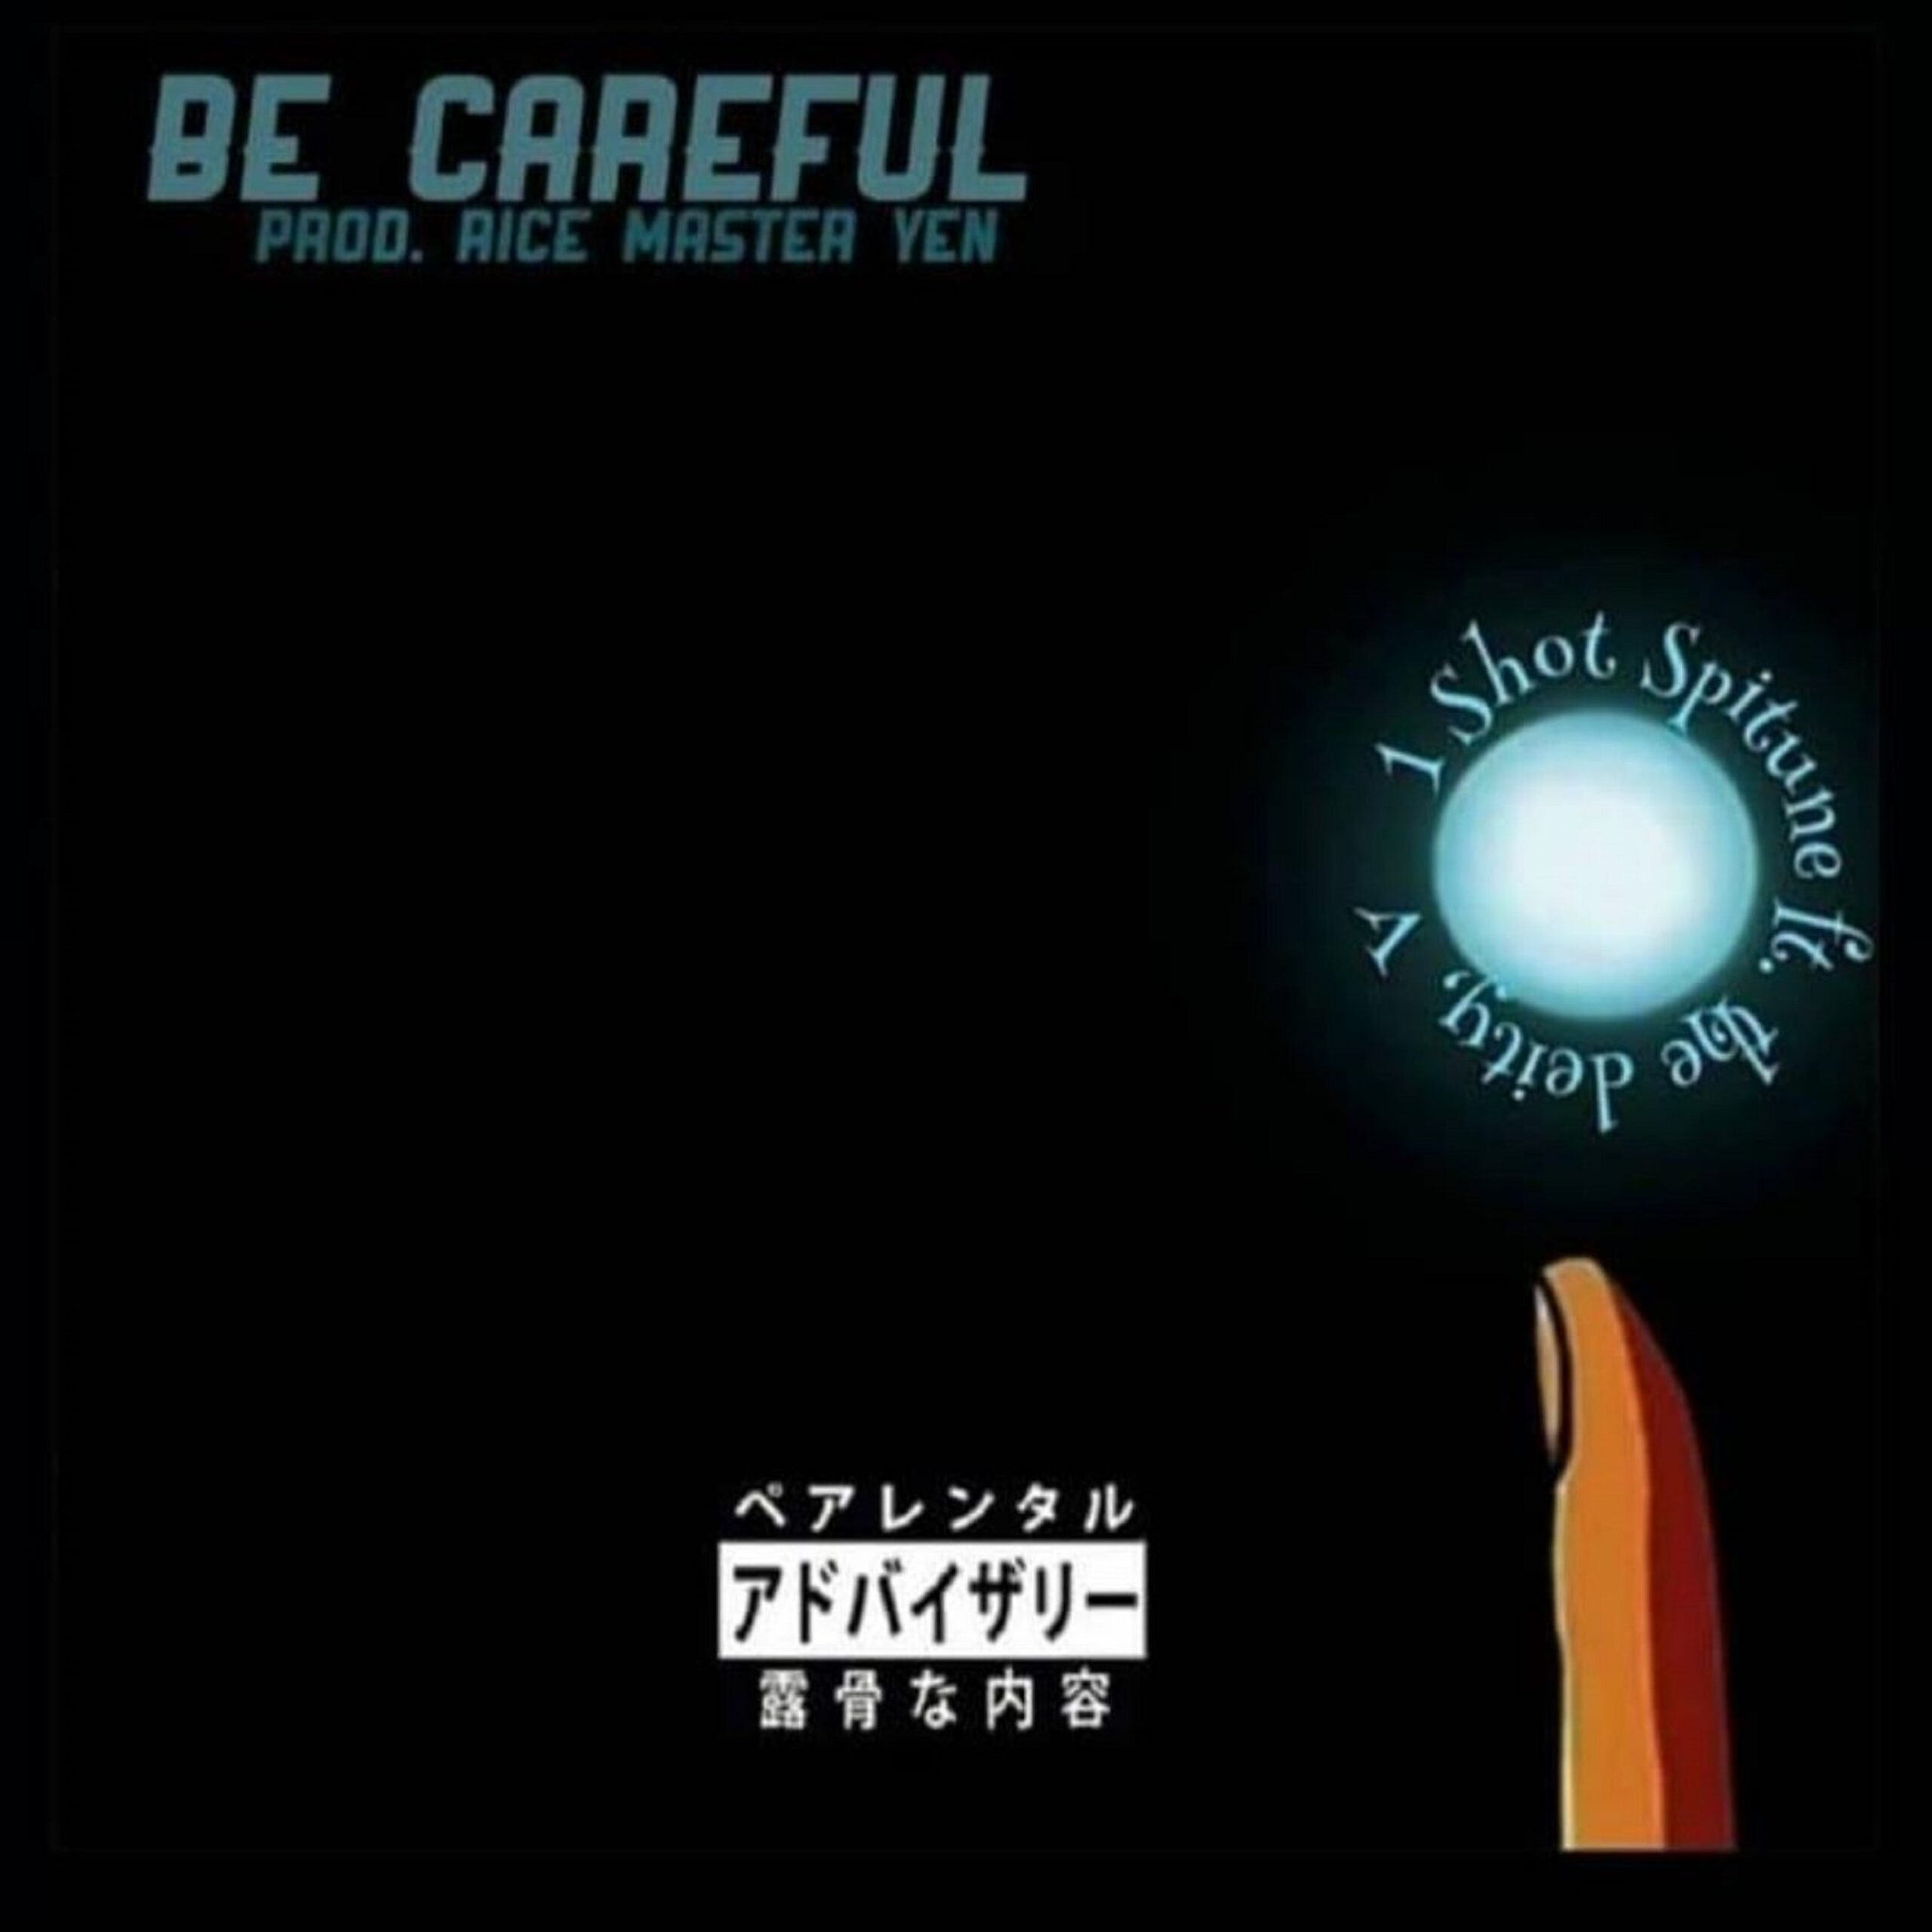 1 Shot Spitune - Be Careful ft. the deity, V